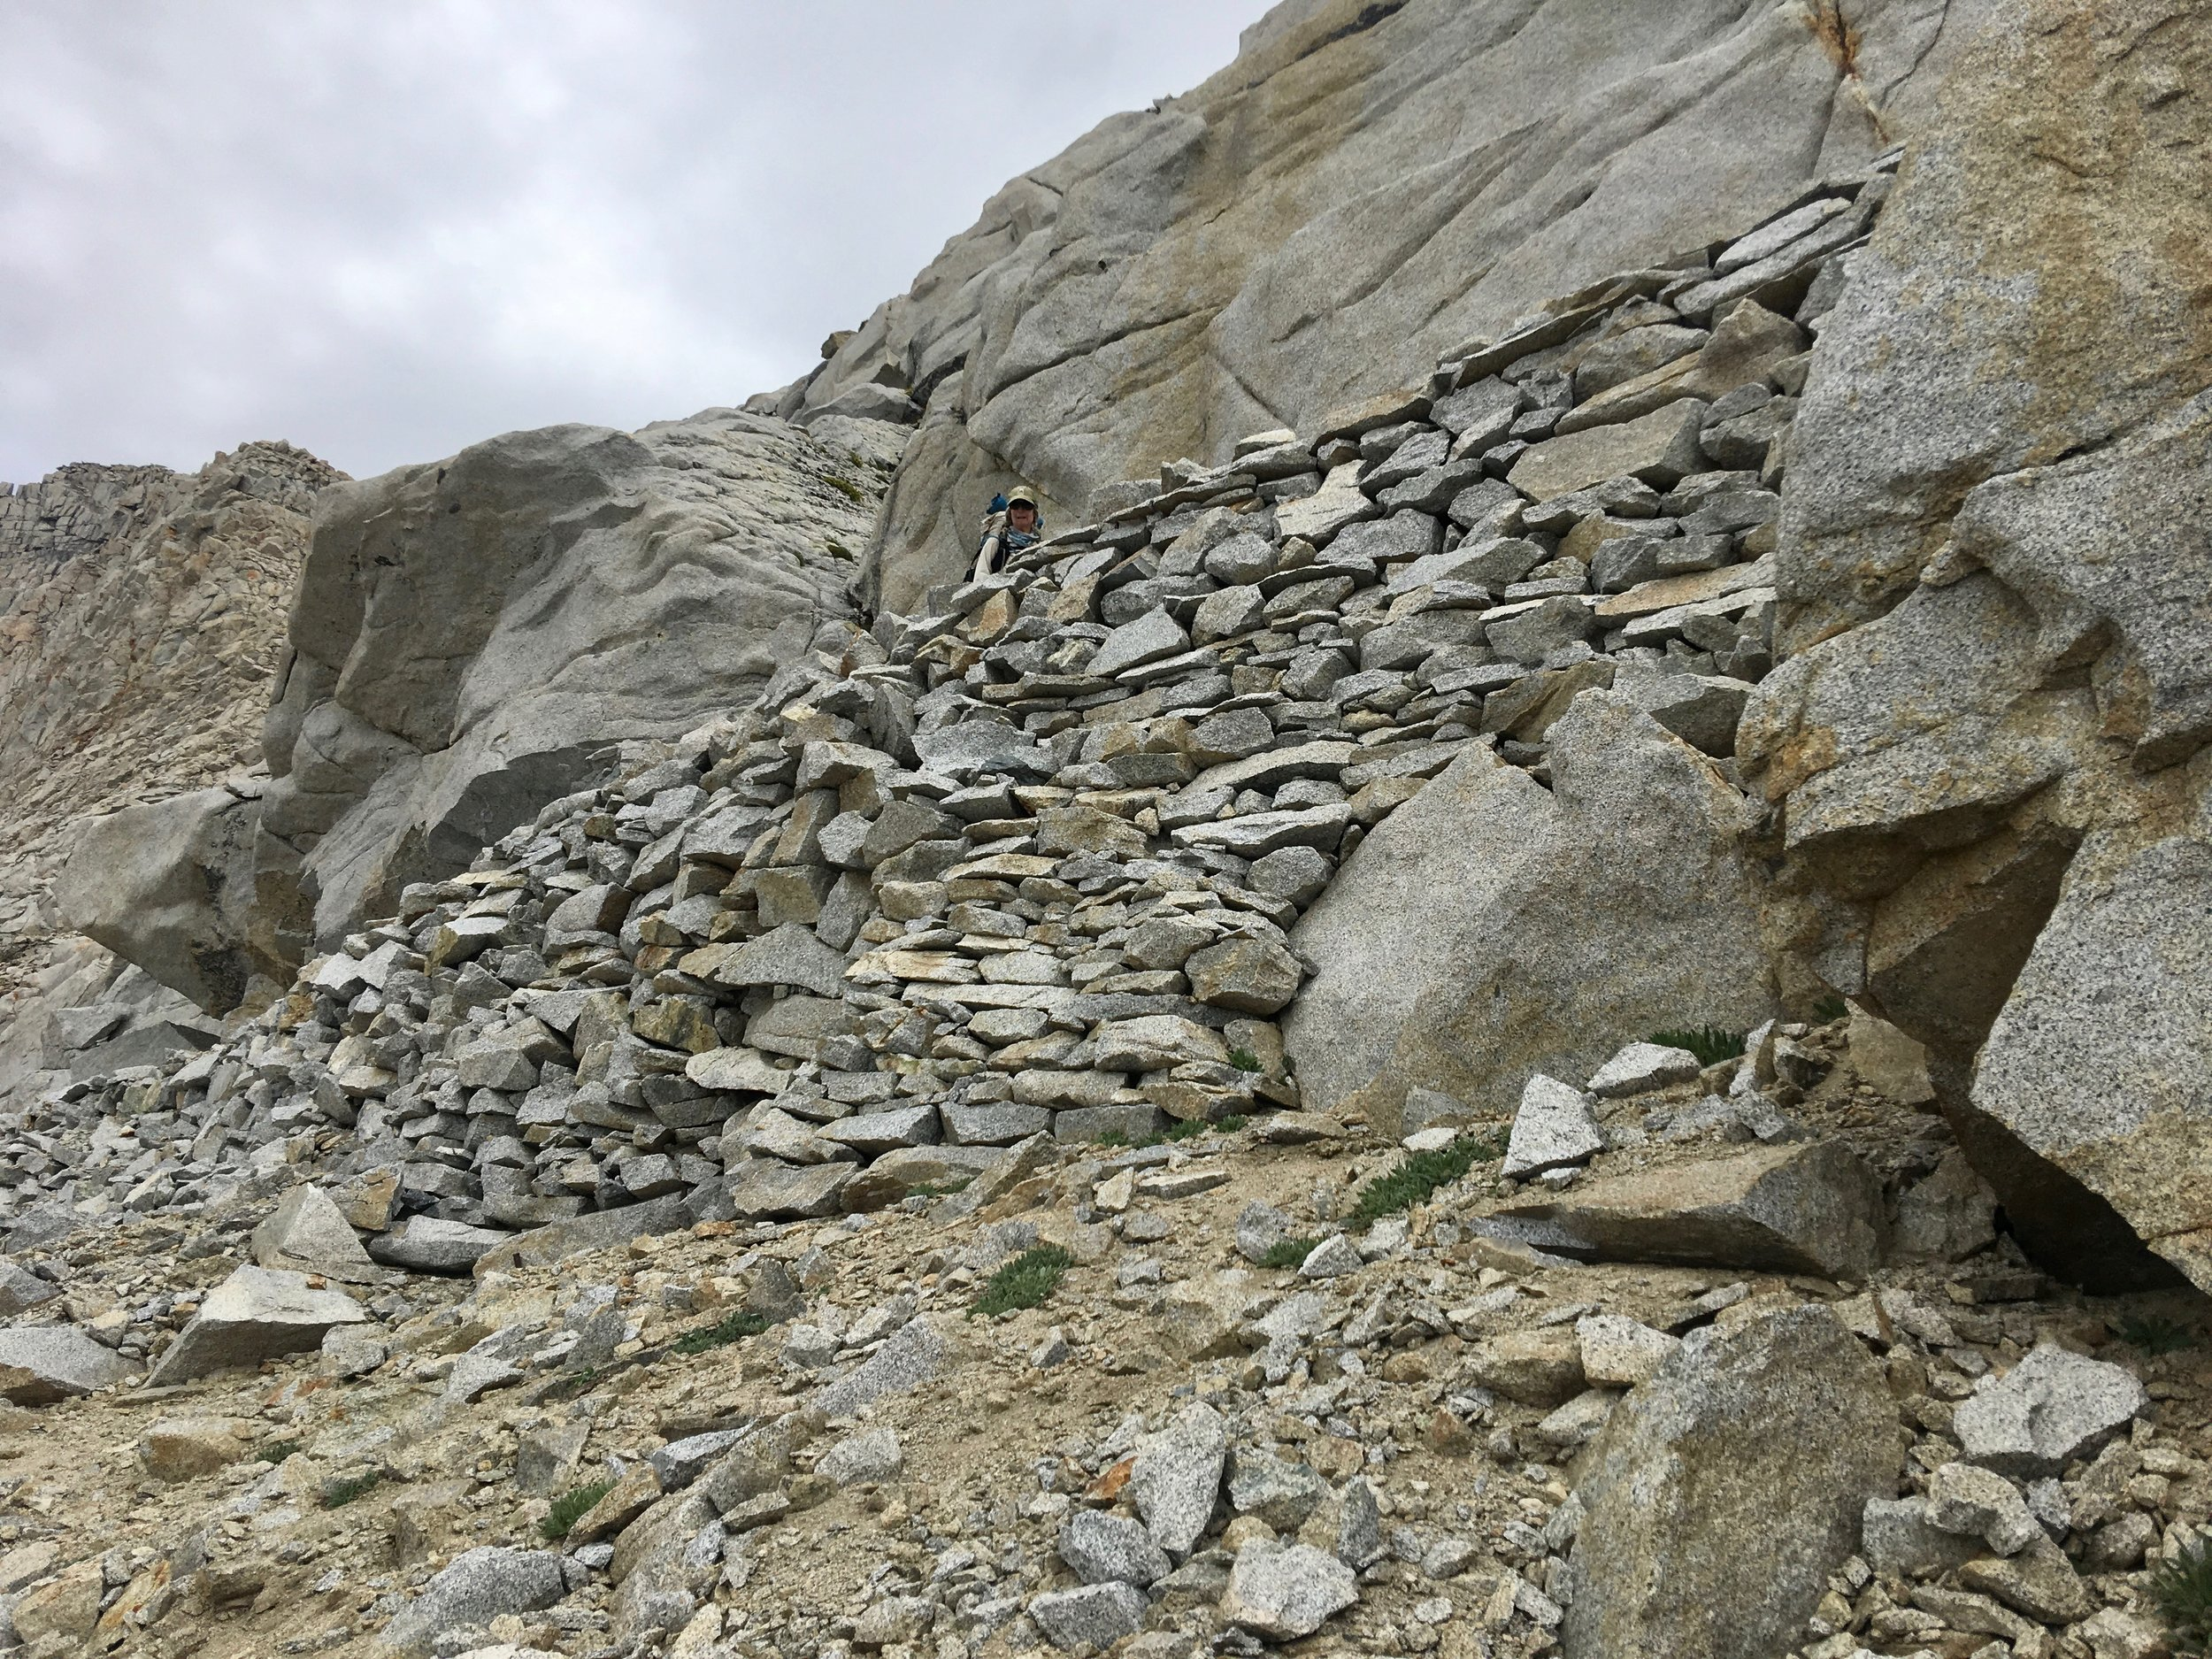 A lot of rock work was done at switch backs.